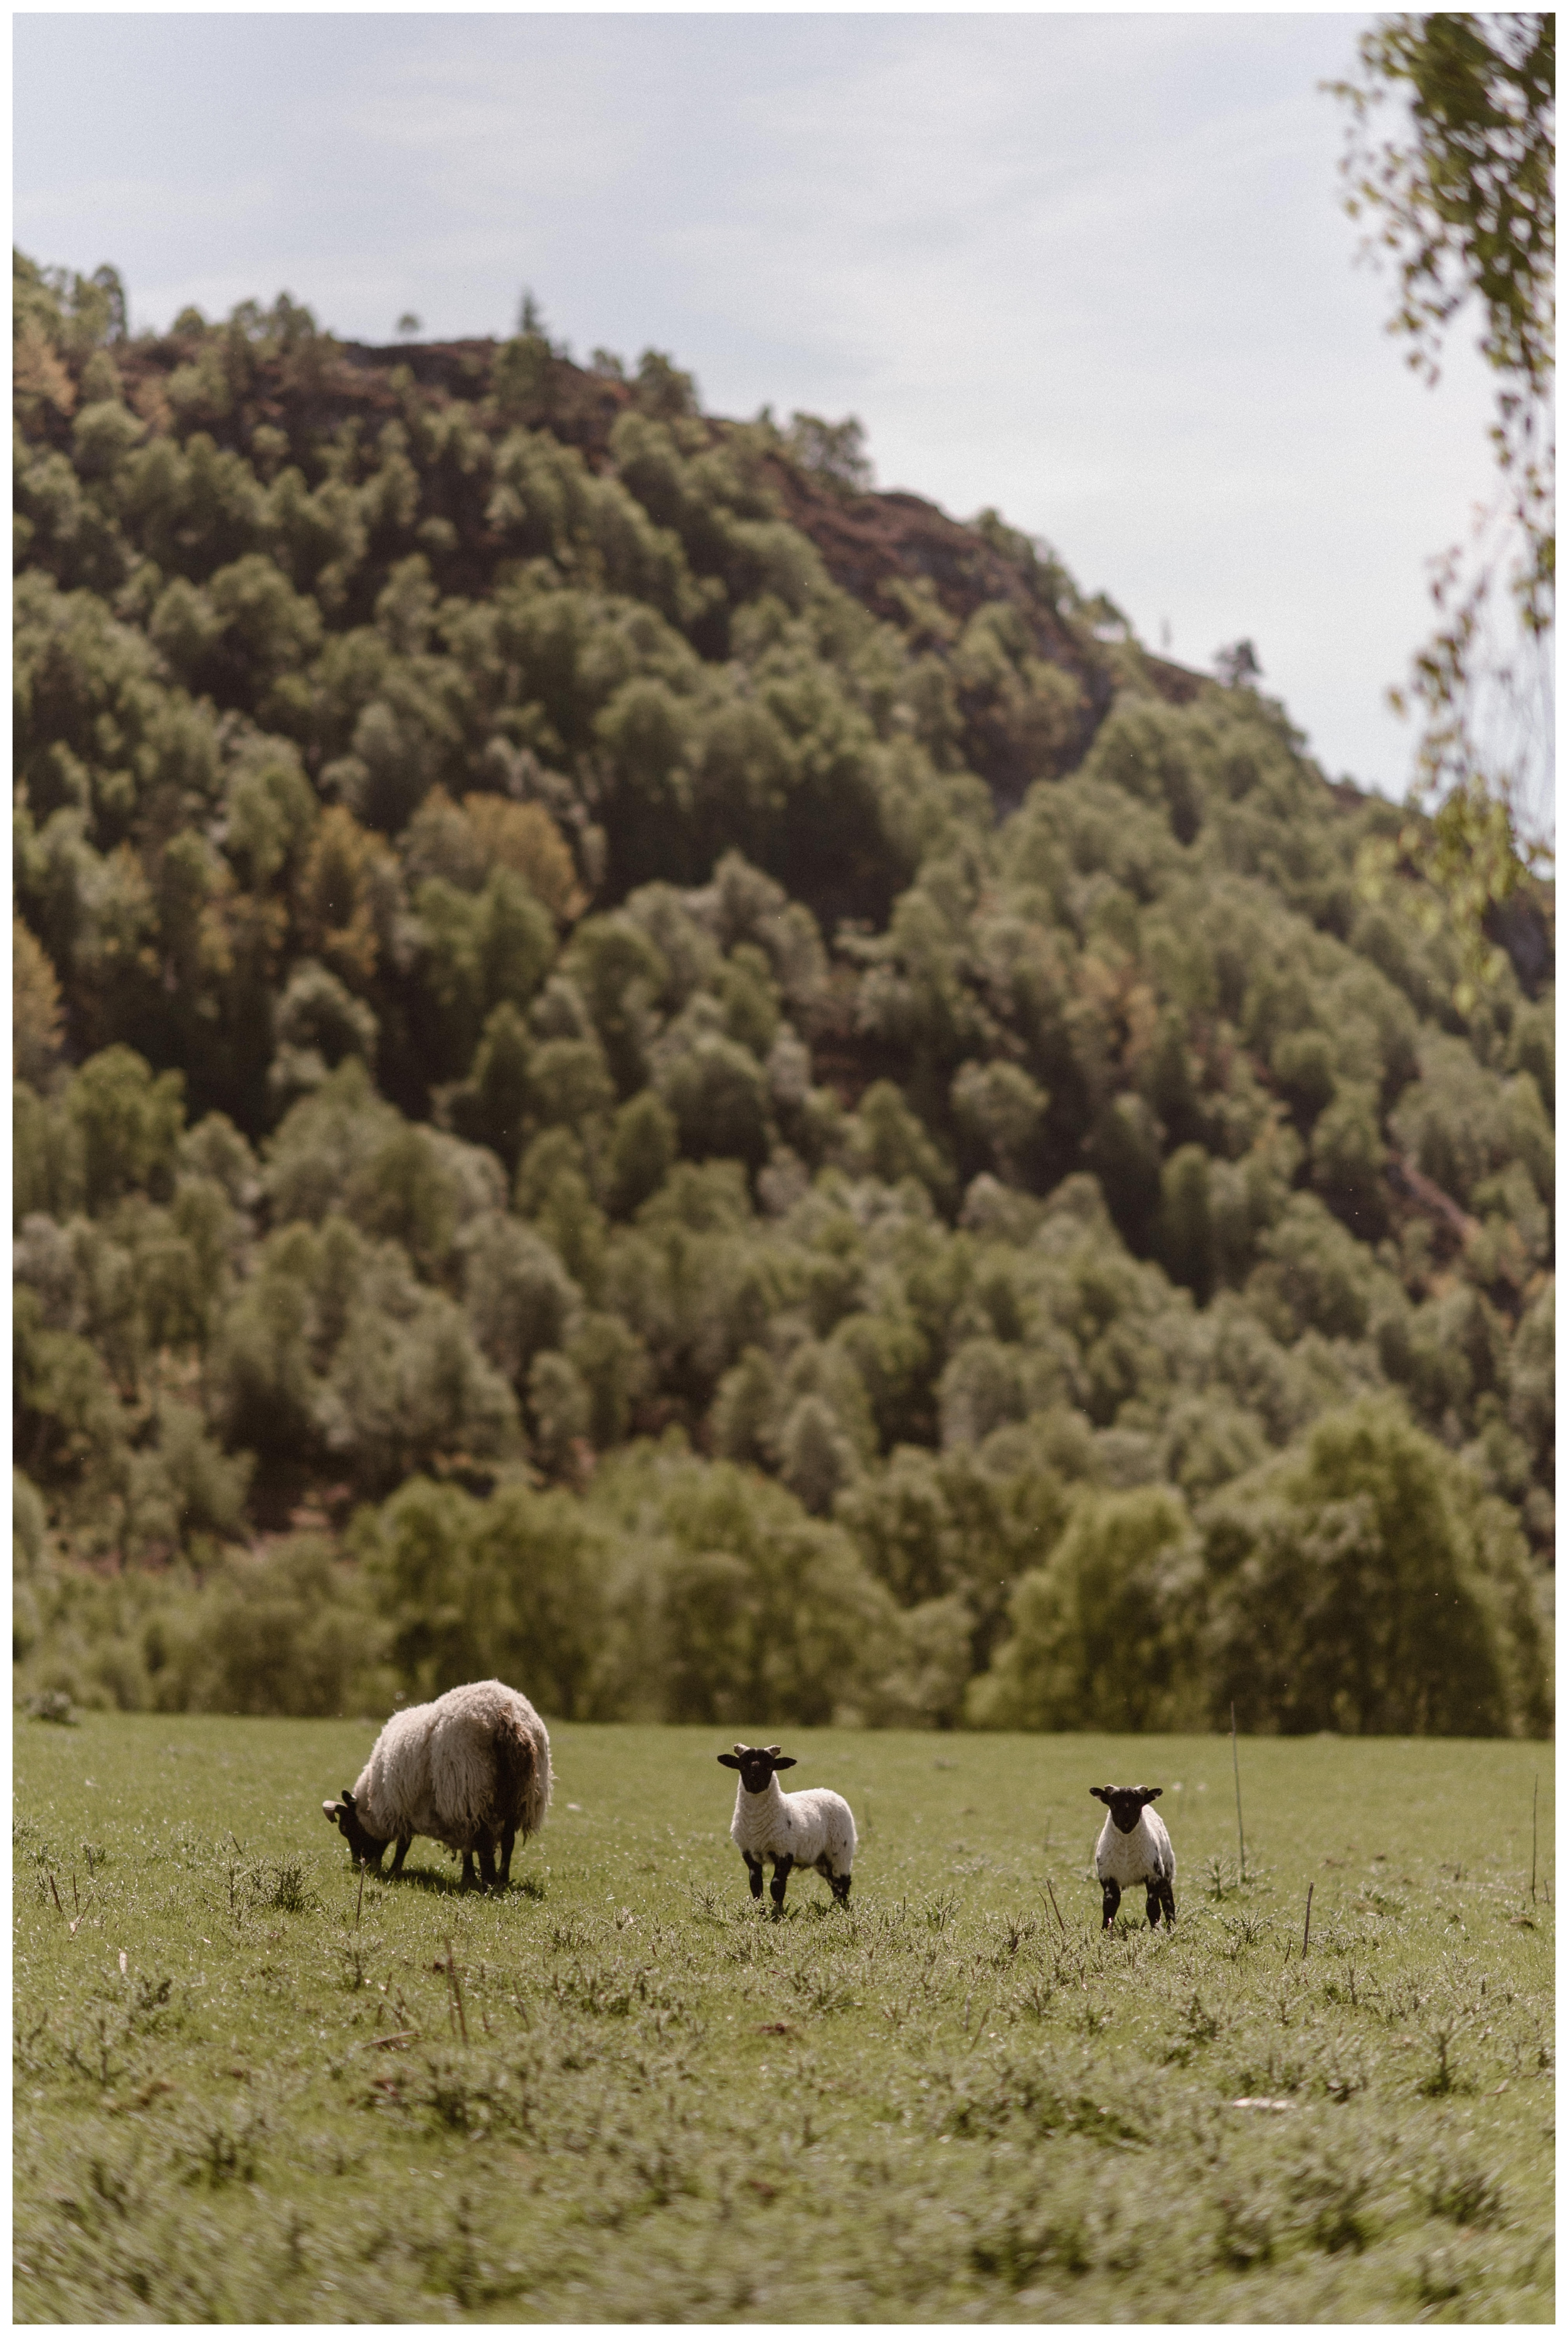 Sheep watched as we explored the Scottish Highlands around Loch Ness during Elissa and Daniel's day after photo session following their elopement in Glencoe, Scotland. Photo by Maddie Mae, Adventure Instead.